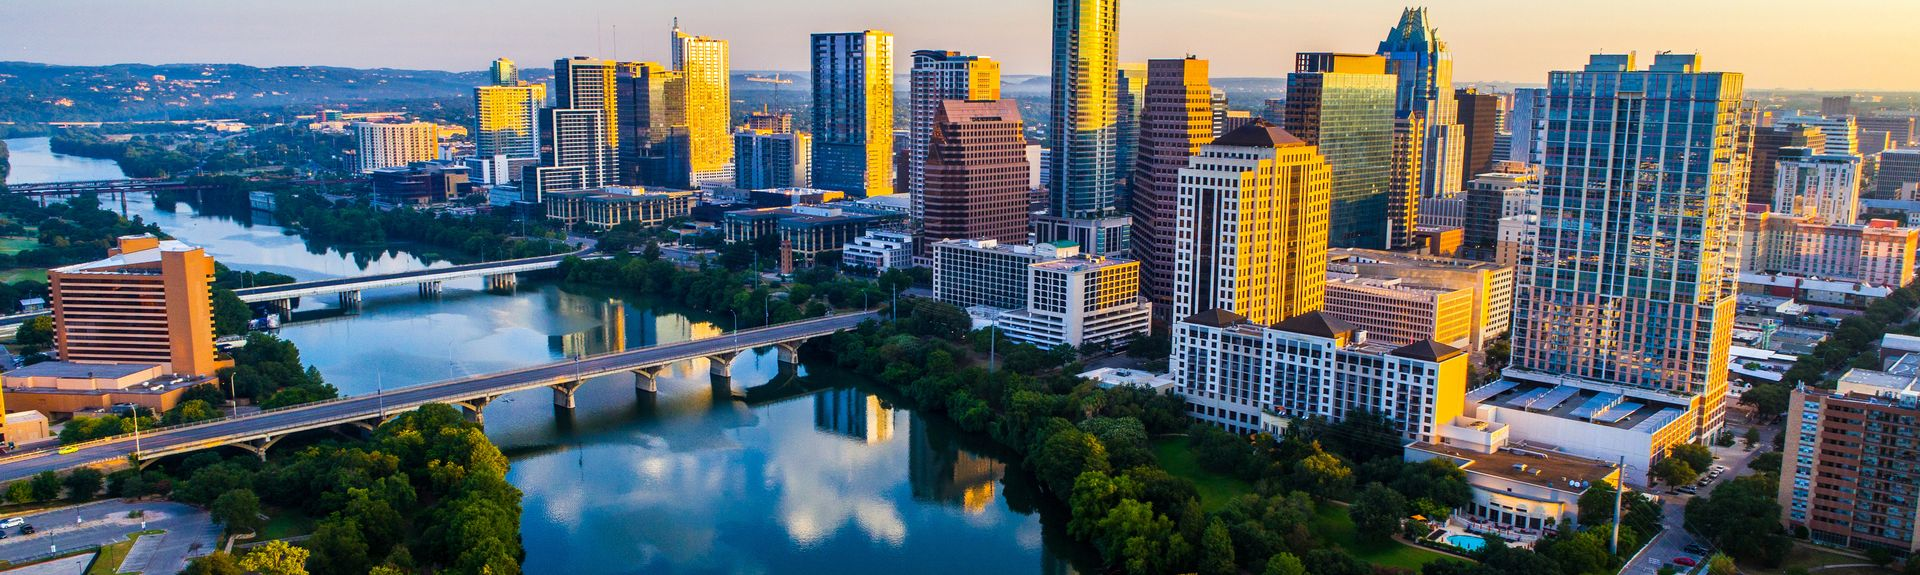 Downtown Austin, Austin, Texas, United States of America